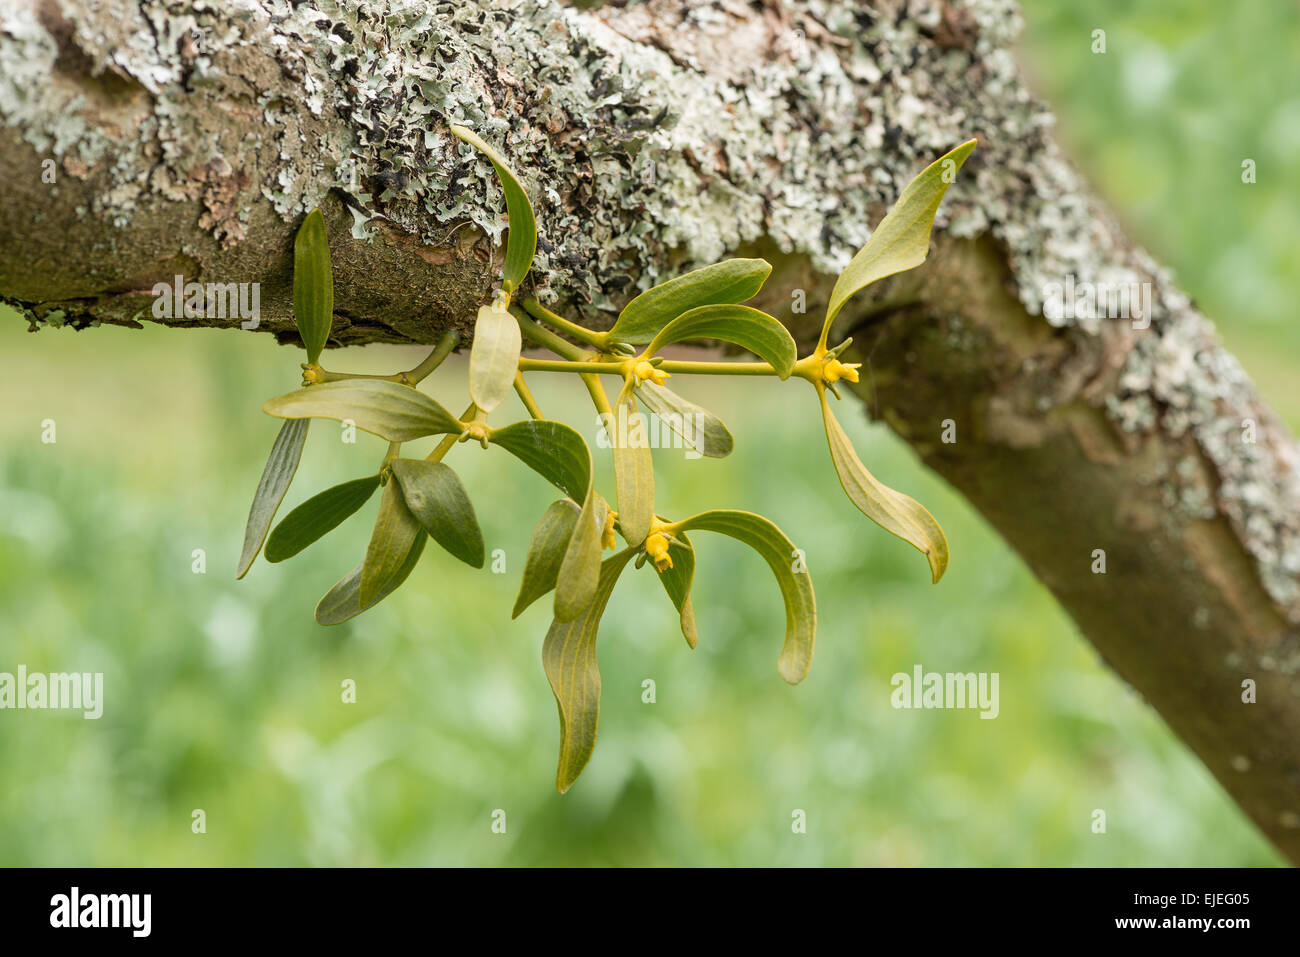 The Branching Holdfast Of A Mistletoe Bush Beneath Side Branch On An Old Apple Tree